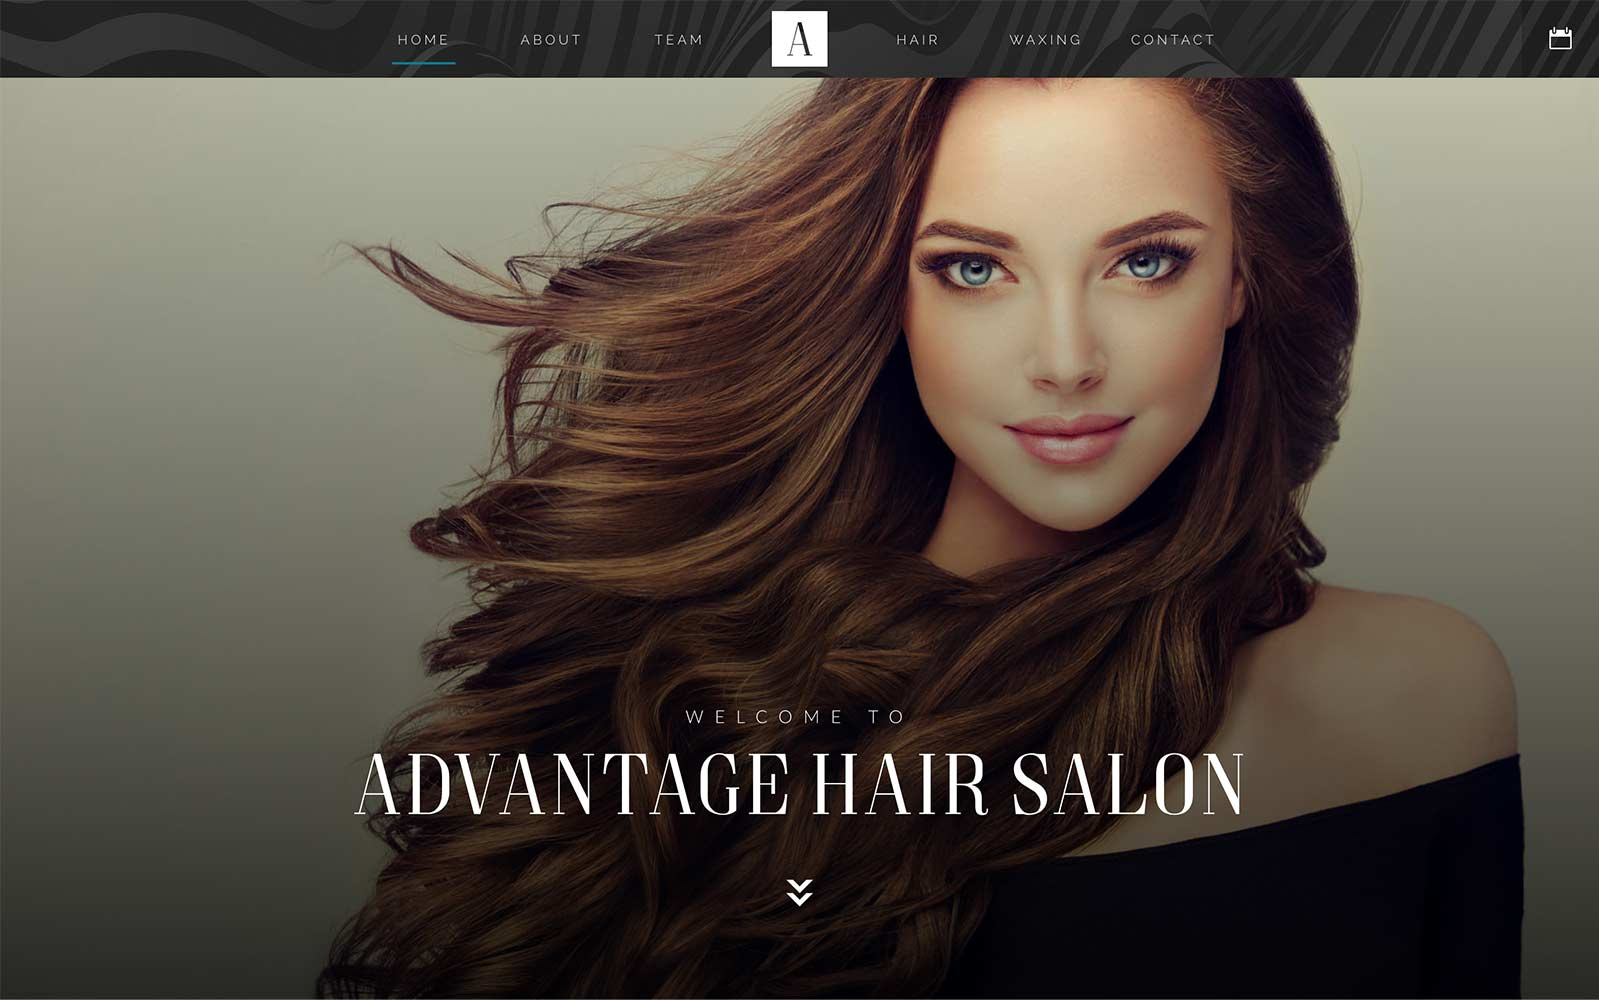 Advantage Hair Salon